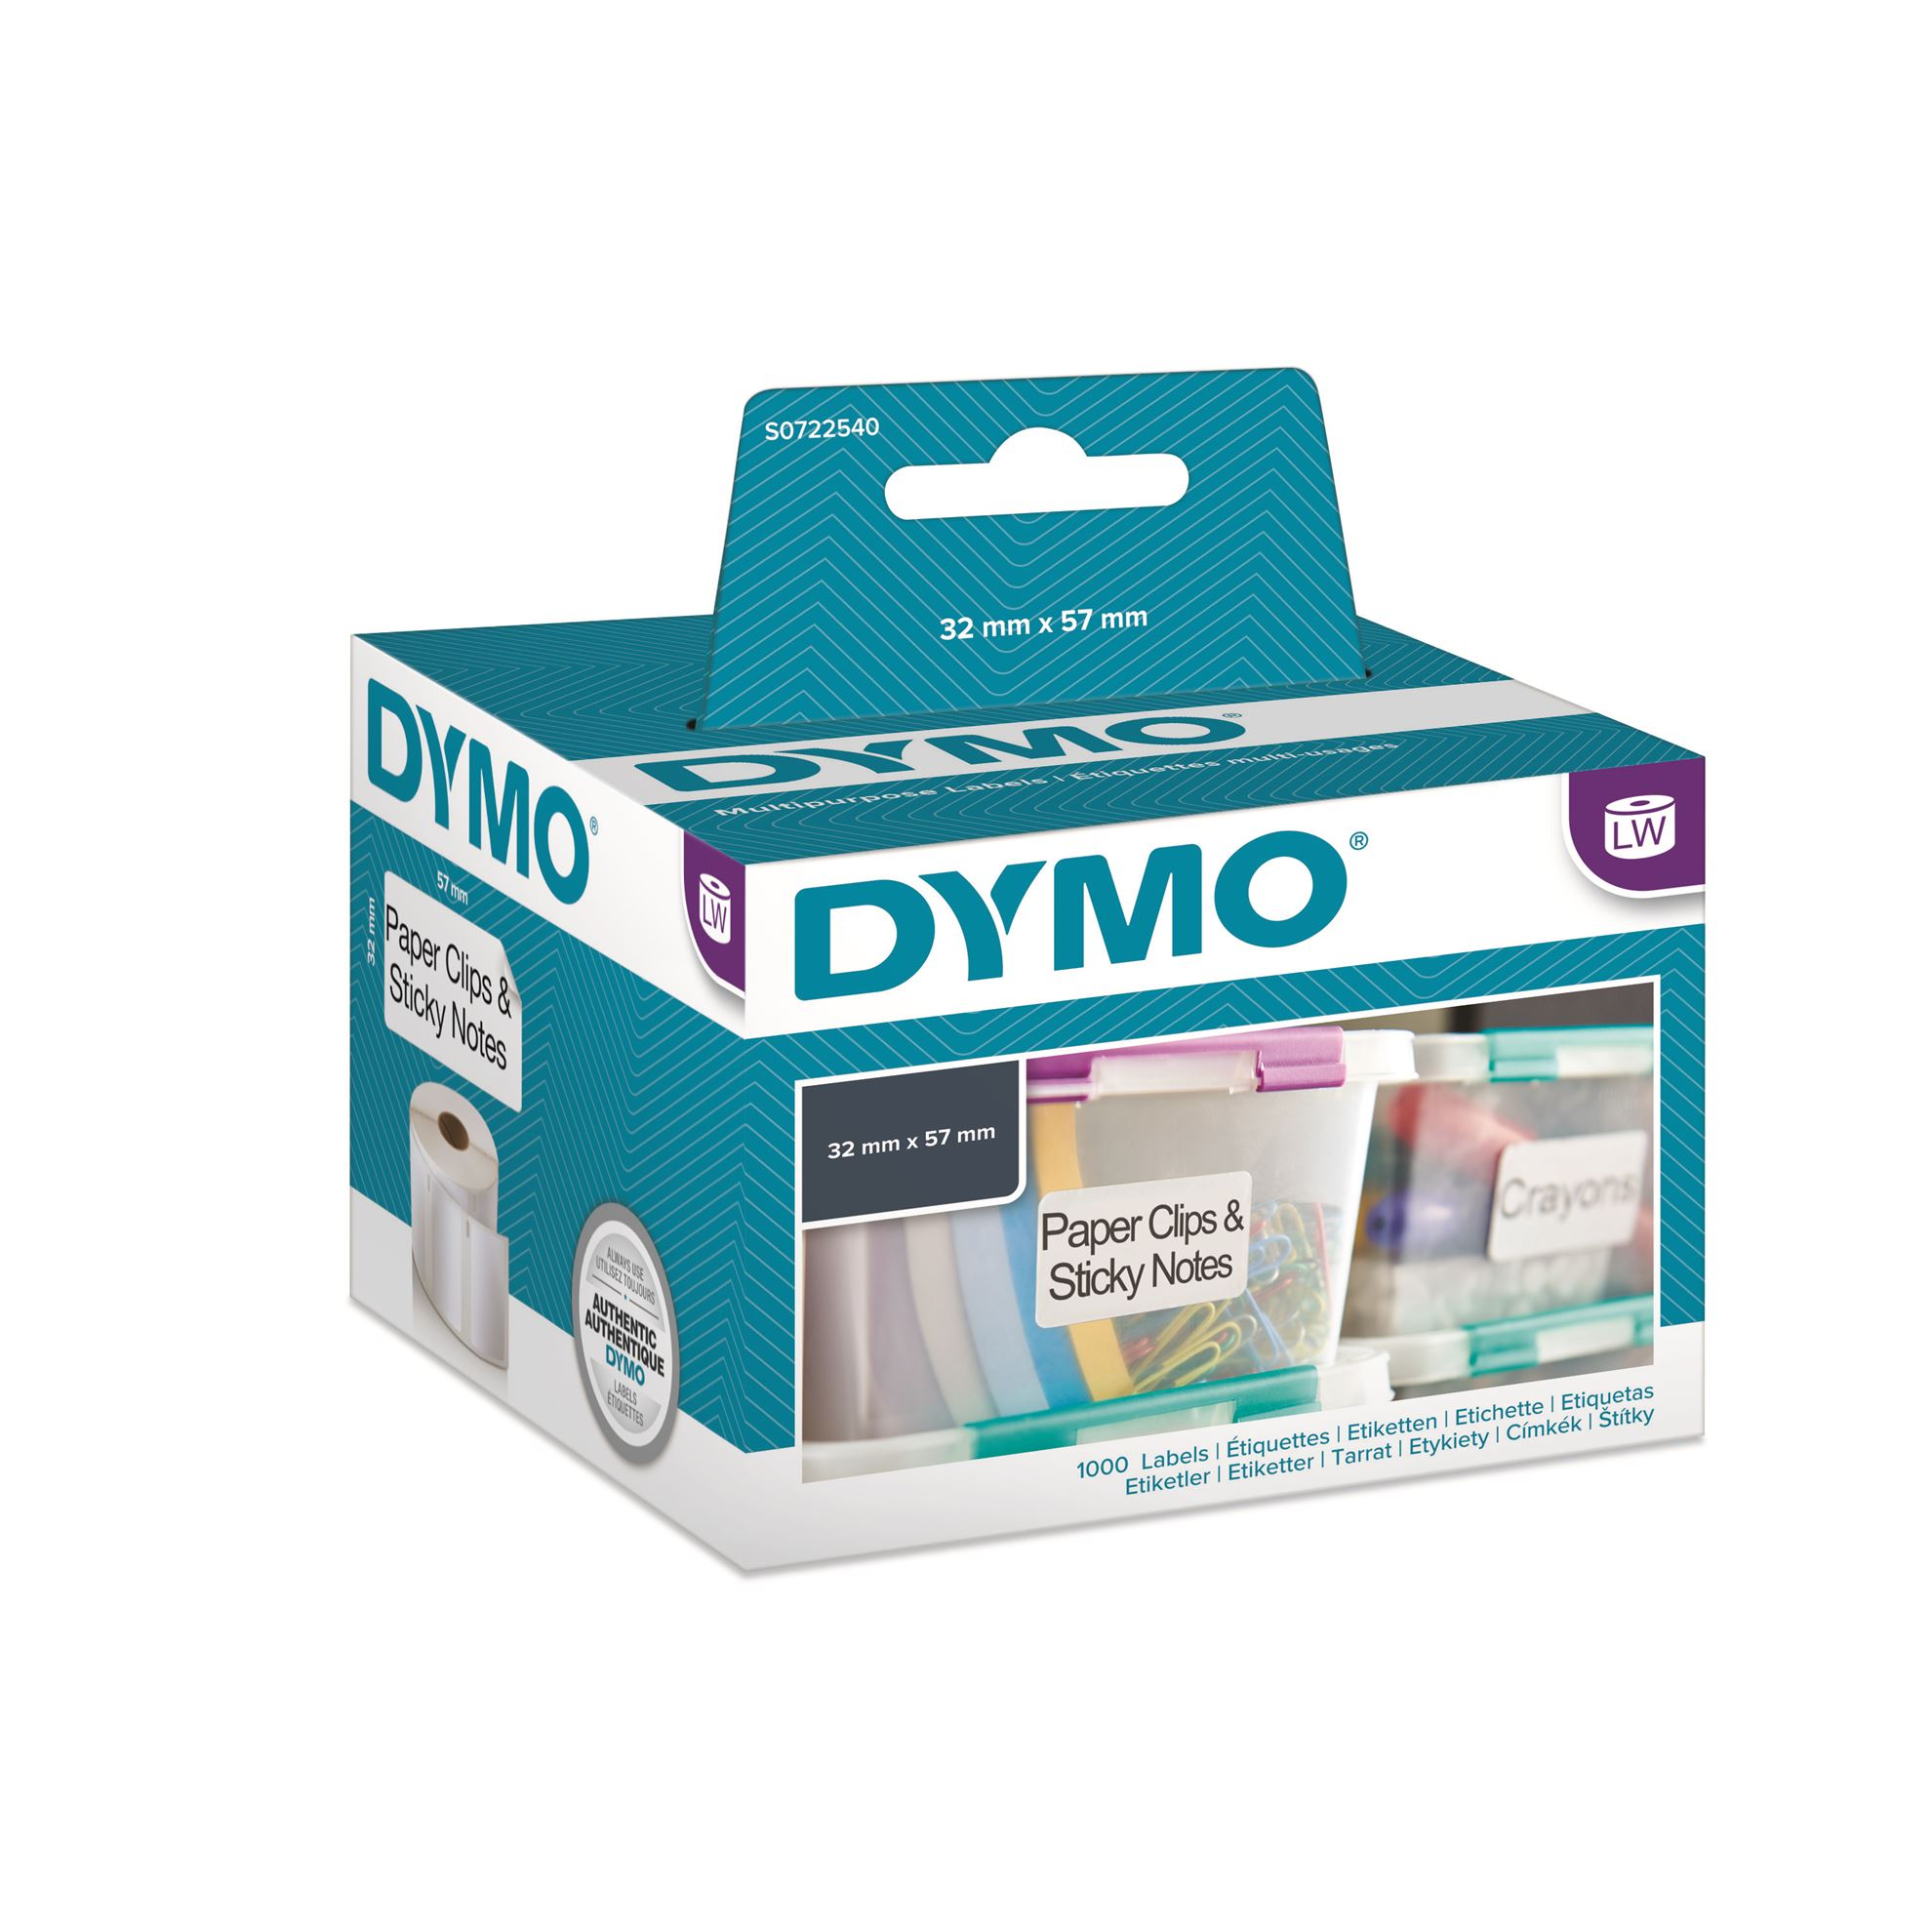 DYMO LW 57mm x 32mm Black on White Shipping Address Label Roll